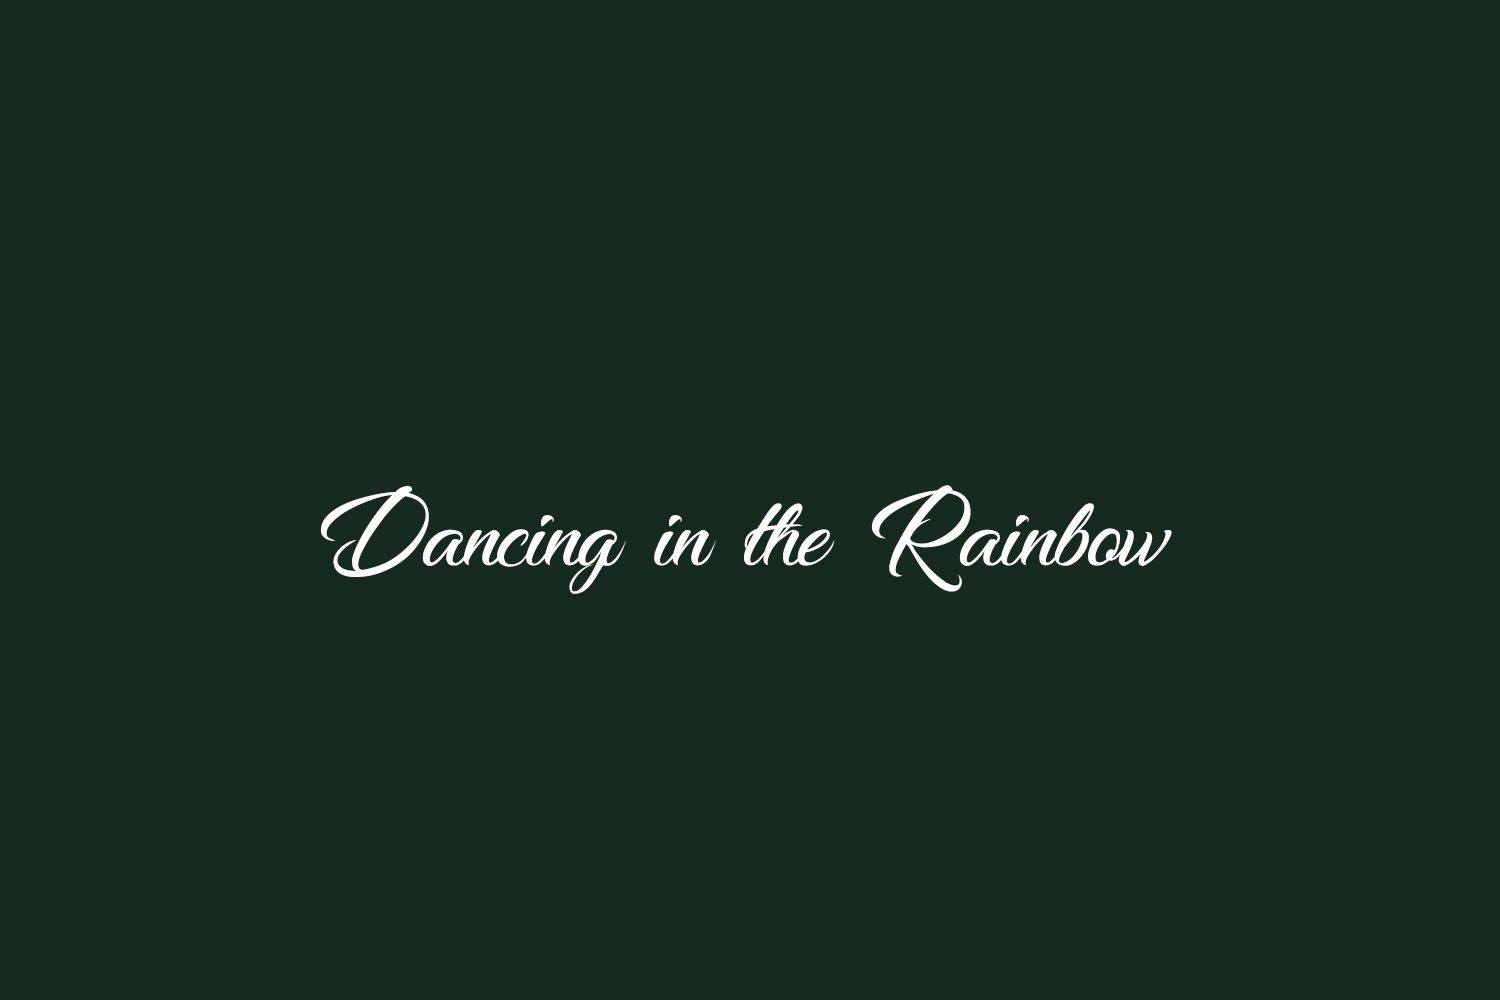 Dancing in the Rainbow Free Font